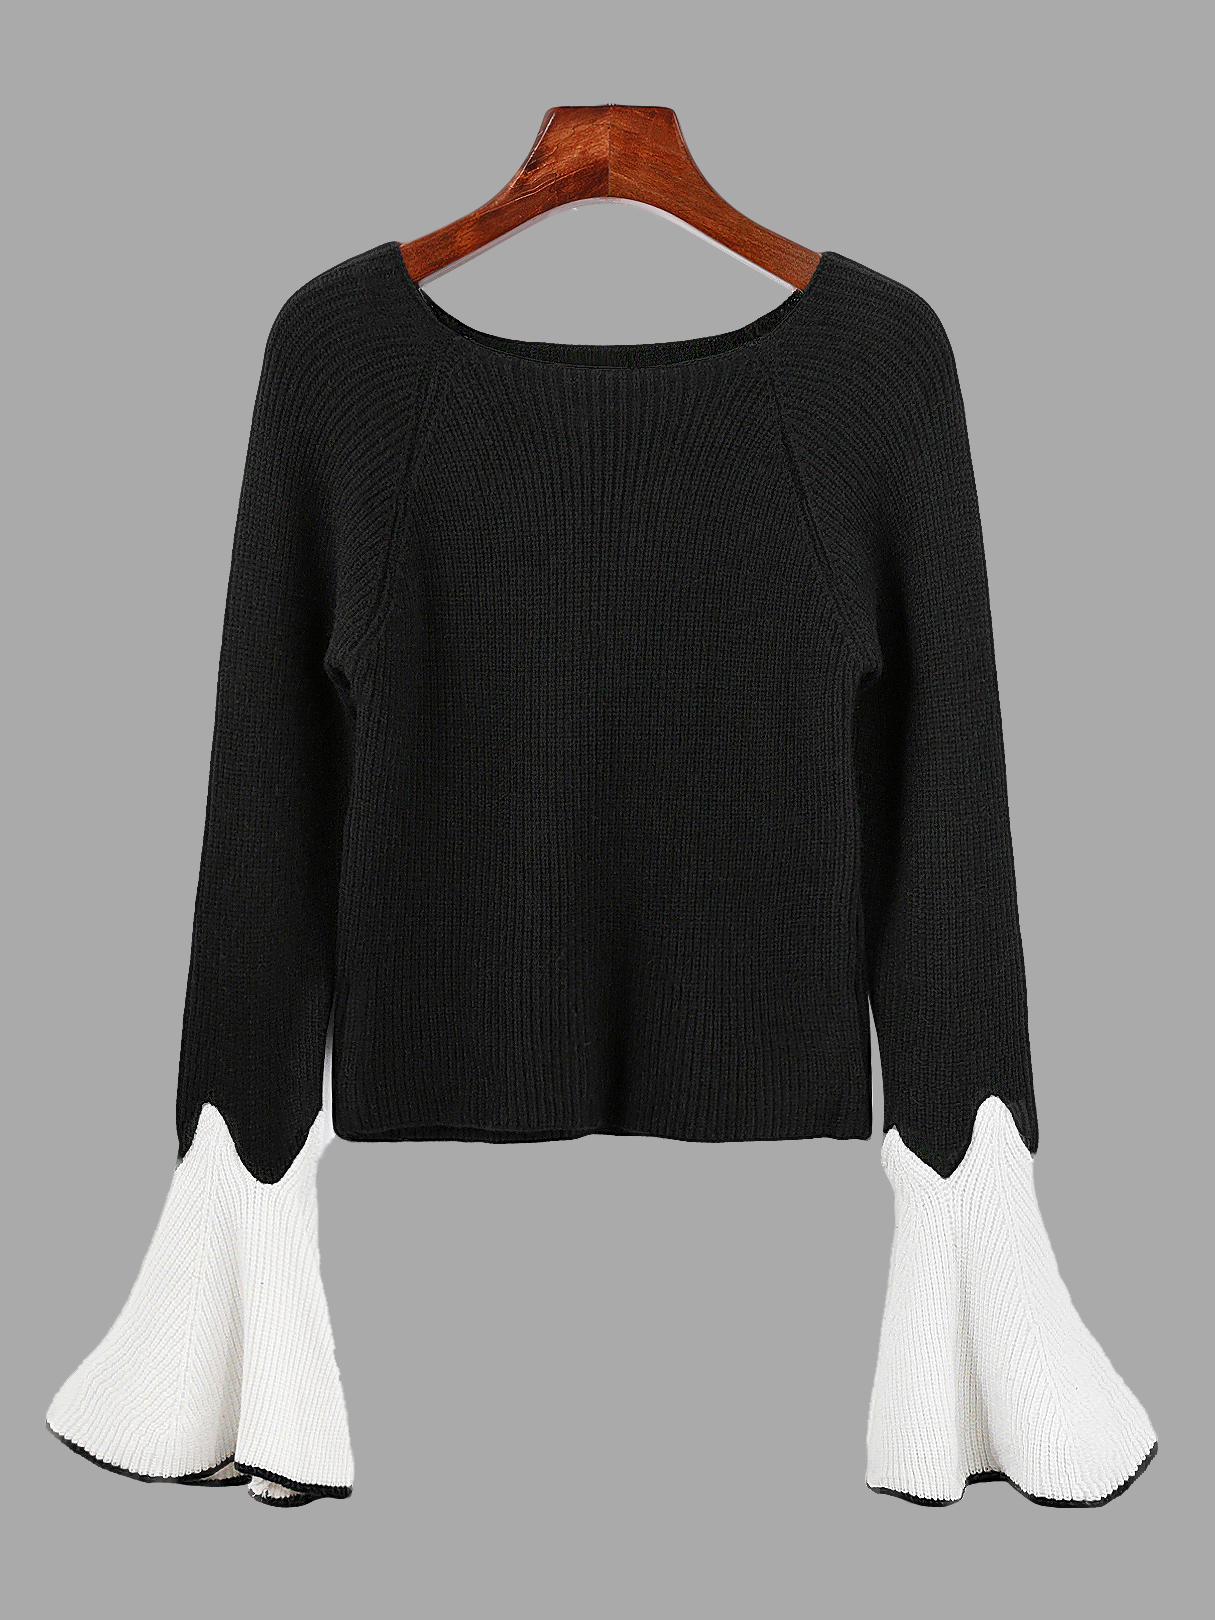 Cute Black Round Neck Long Flares Sleeves Sweater 110 220v for apple samsung lcd screen split assembly separator machine youyue 946d